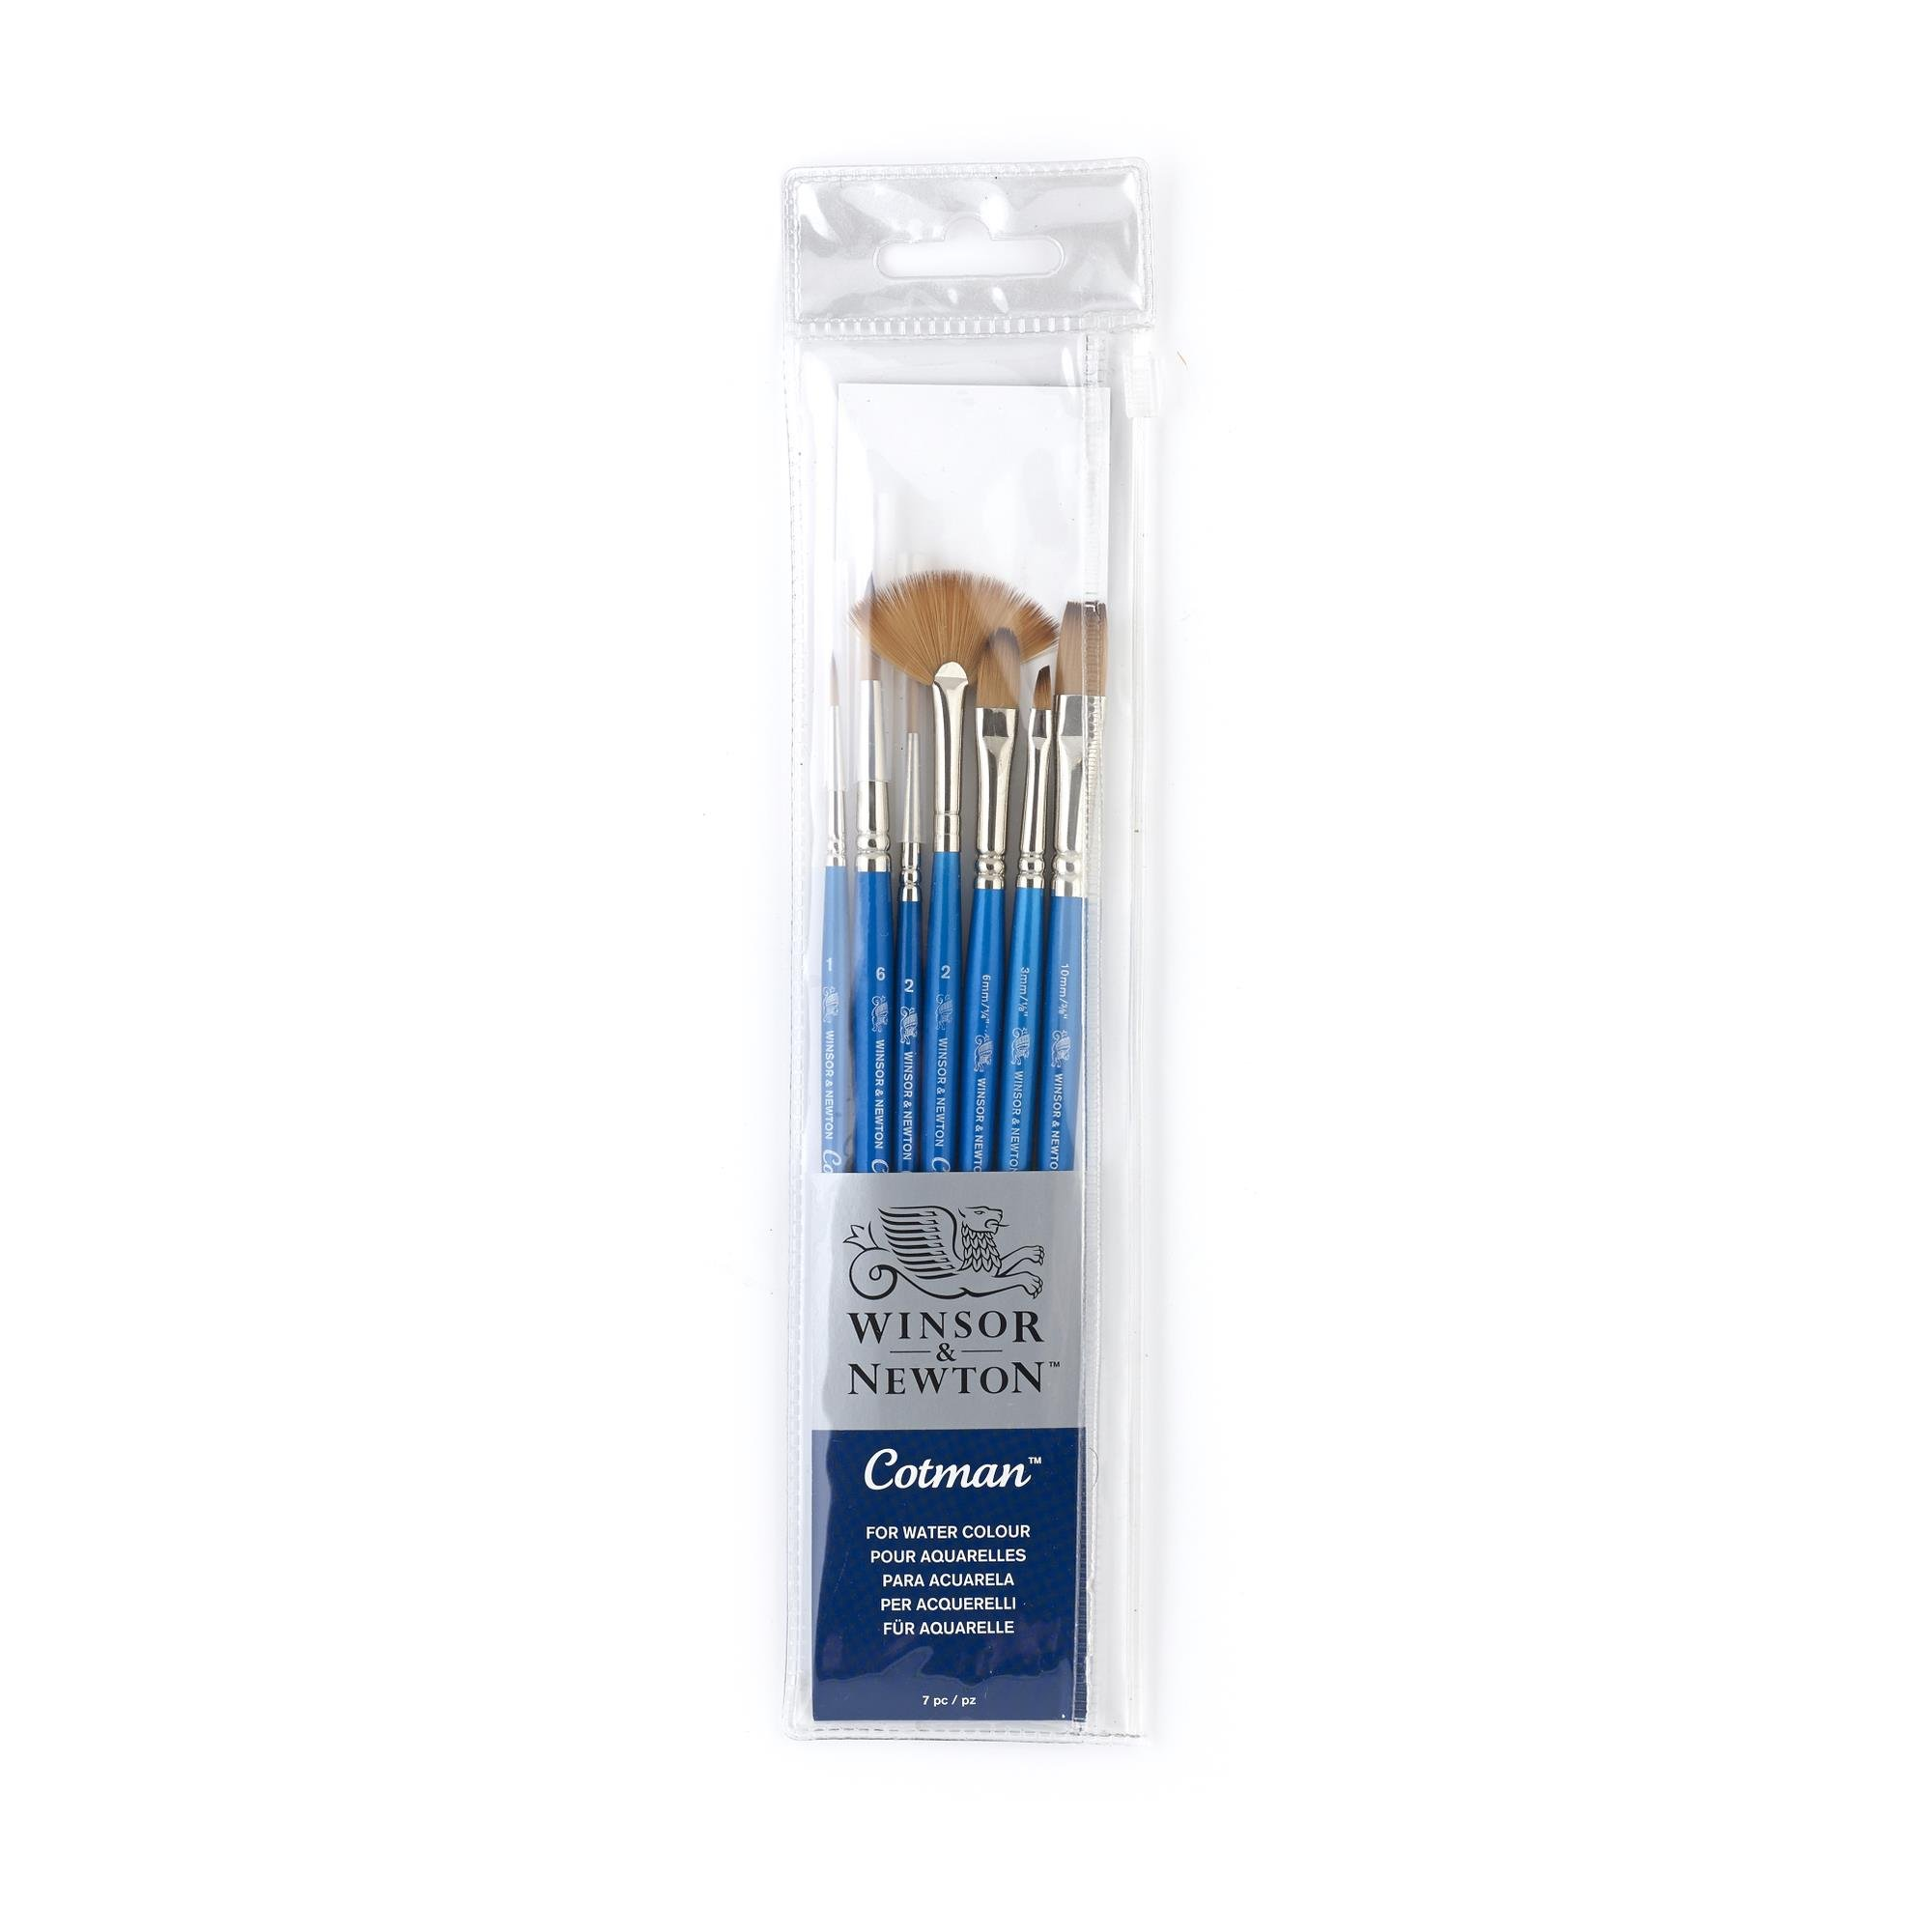 Winsor & Newton Cotman Short Handle Brush (7 Pack) (Round 1 & 6, Rigger 2, Filbert 1/4'', One Stroke 3/8'', Angled 1/8'', Fan 2) by Winsor & Newton (Image #1)